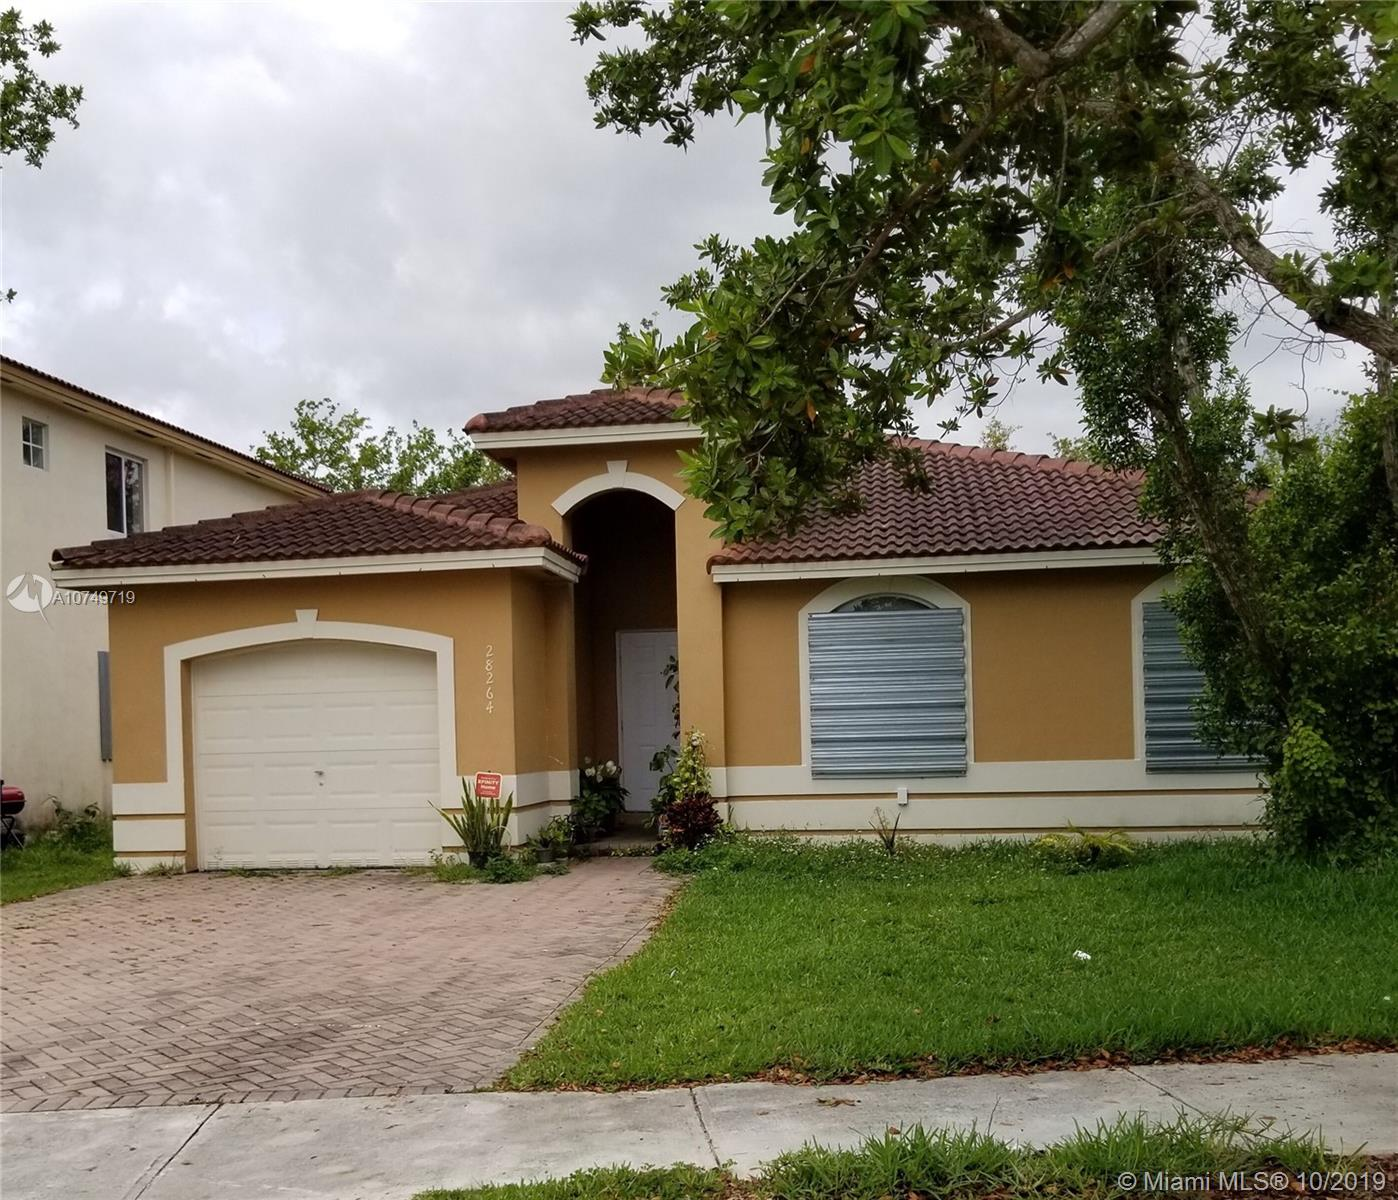 28264 SW 133rd Ave, Homestead, FL 33033 - Homestead, FL real estate listing